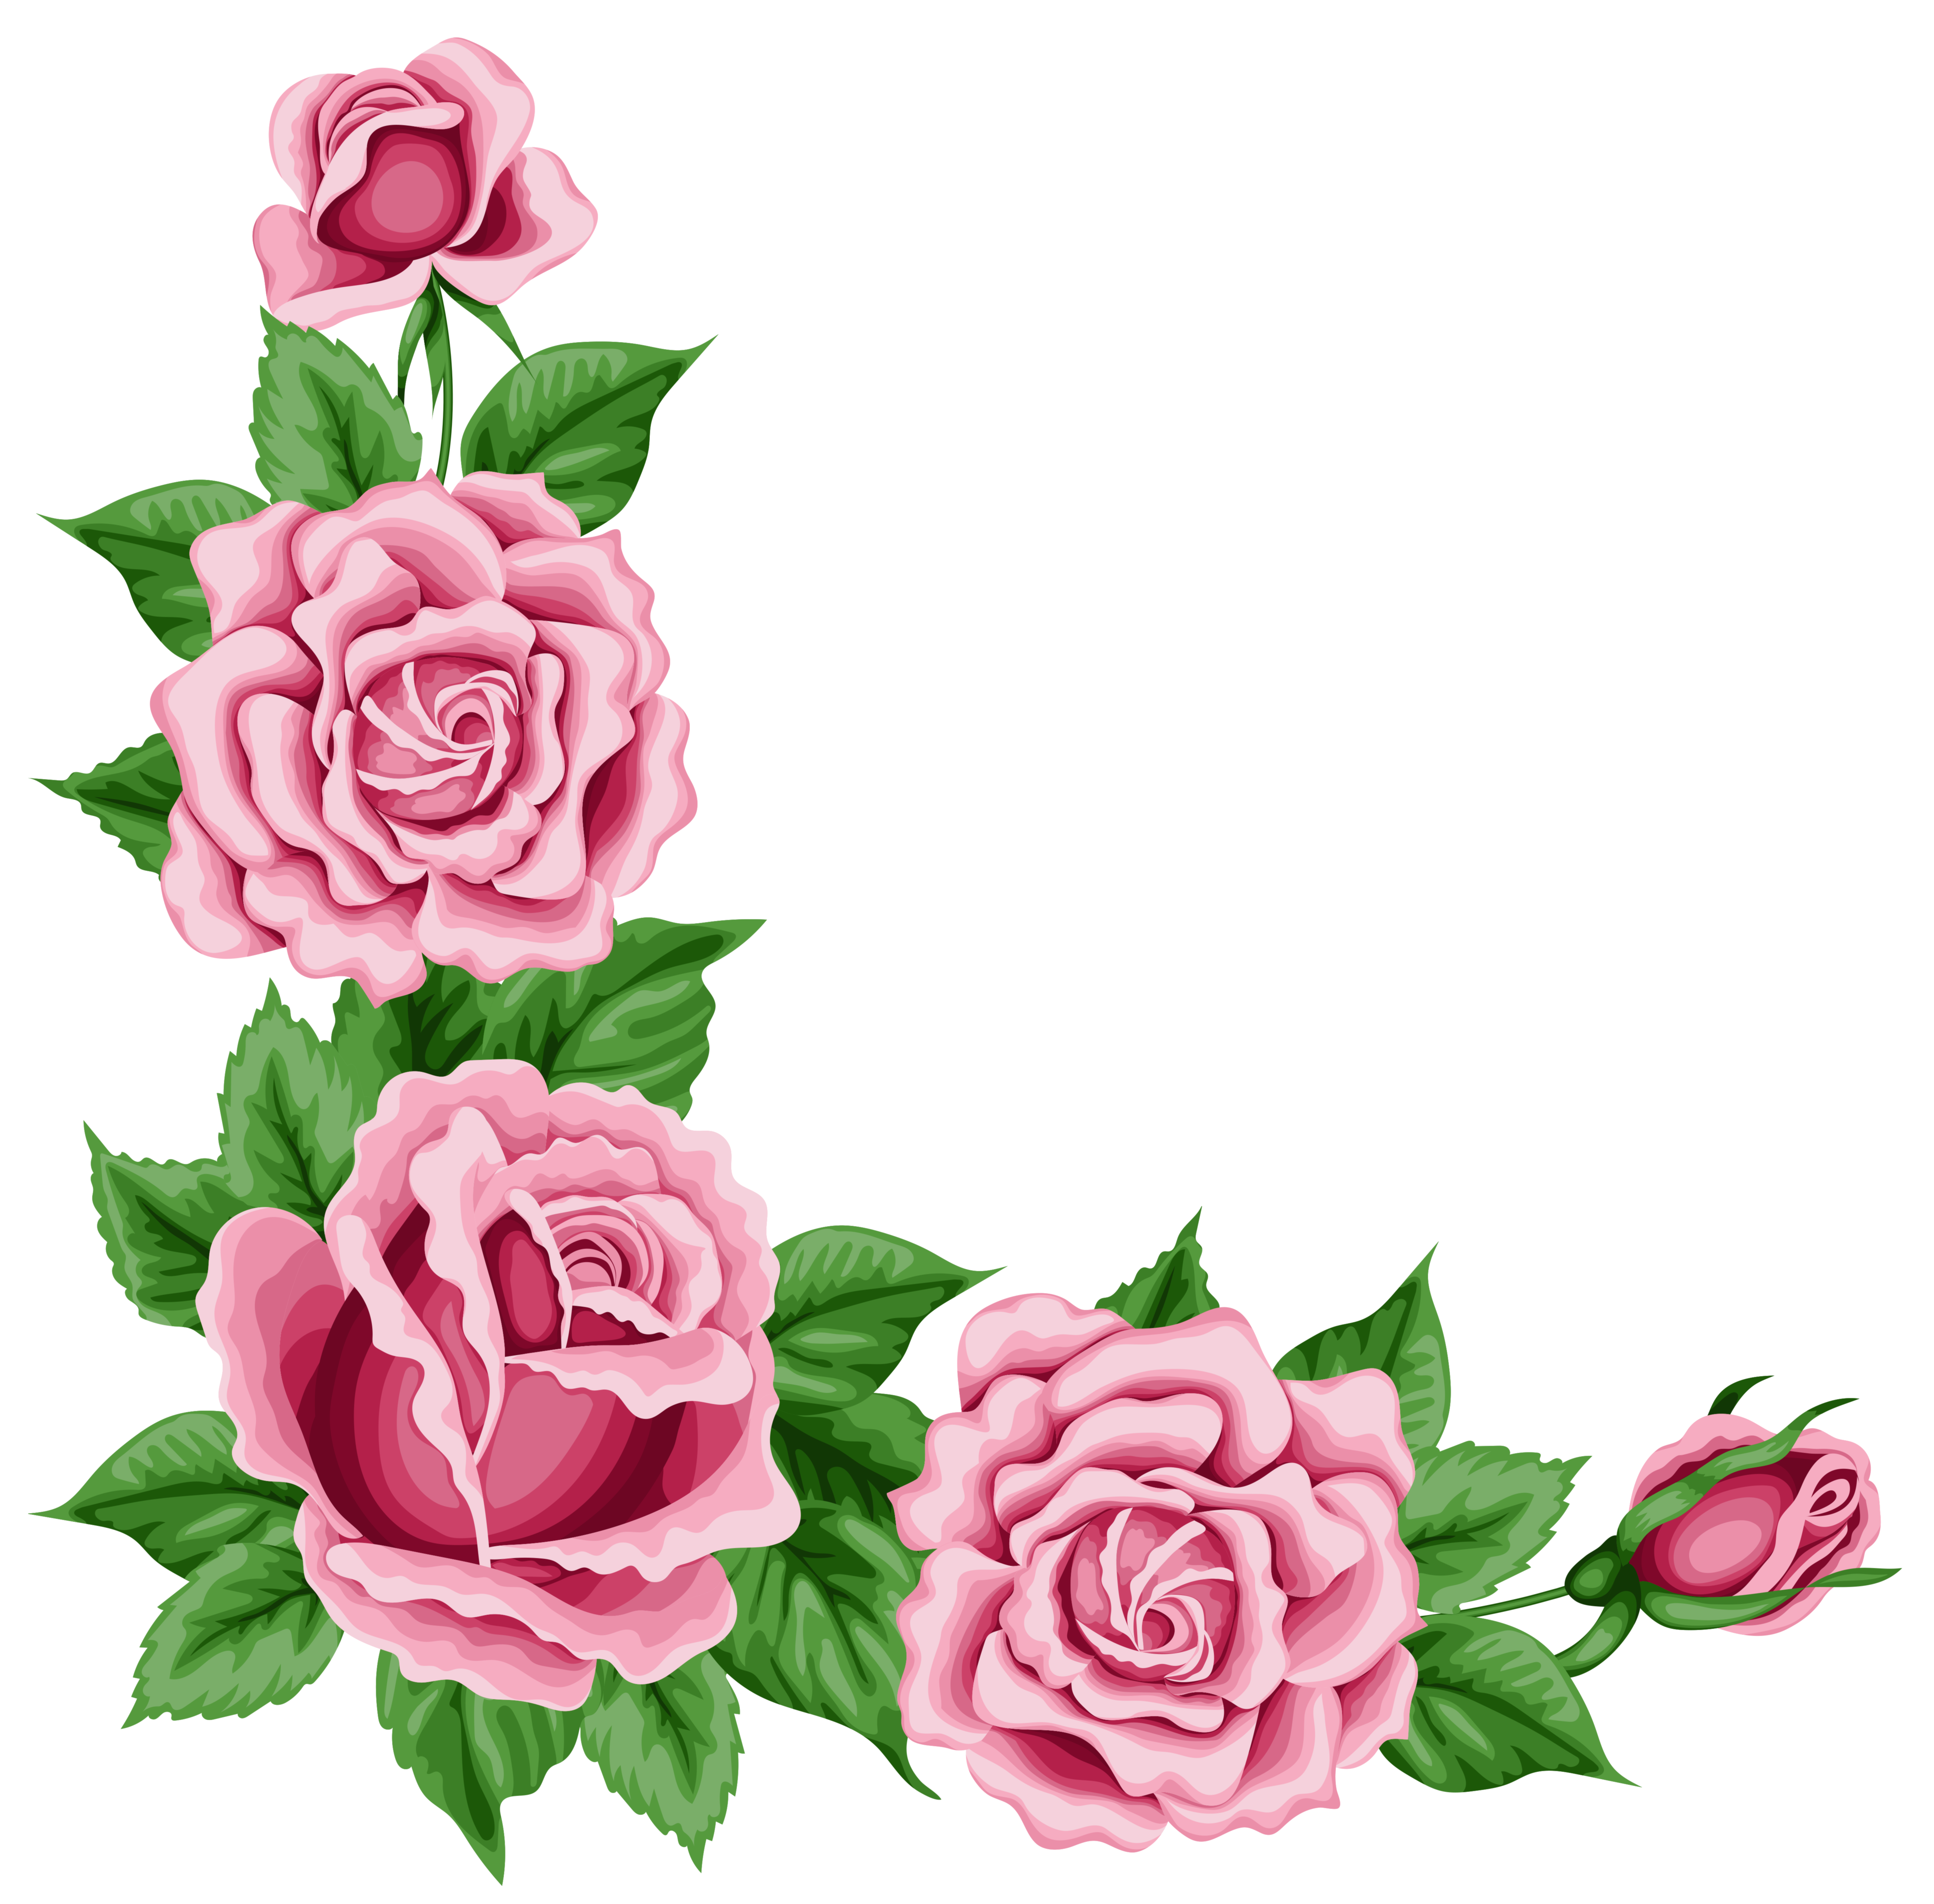 Rose clipart stick. Roses corner decoration png